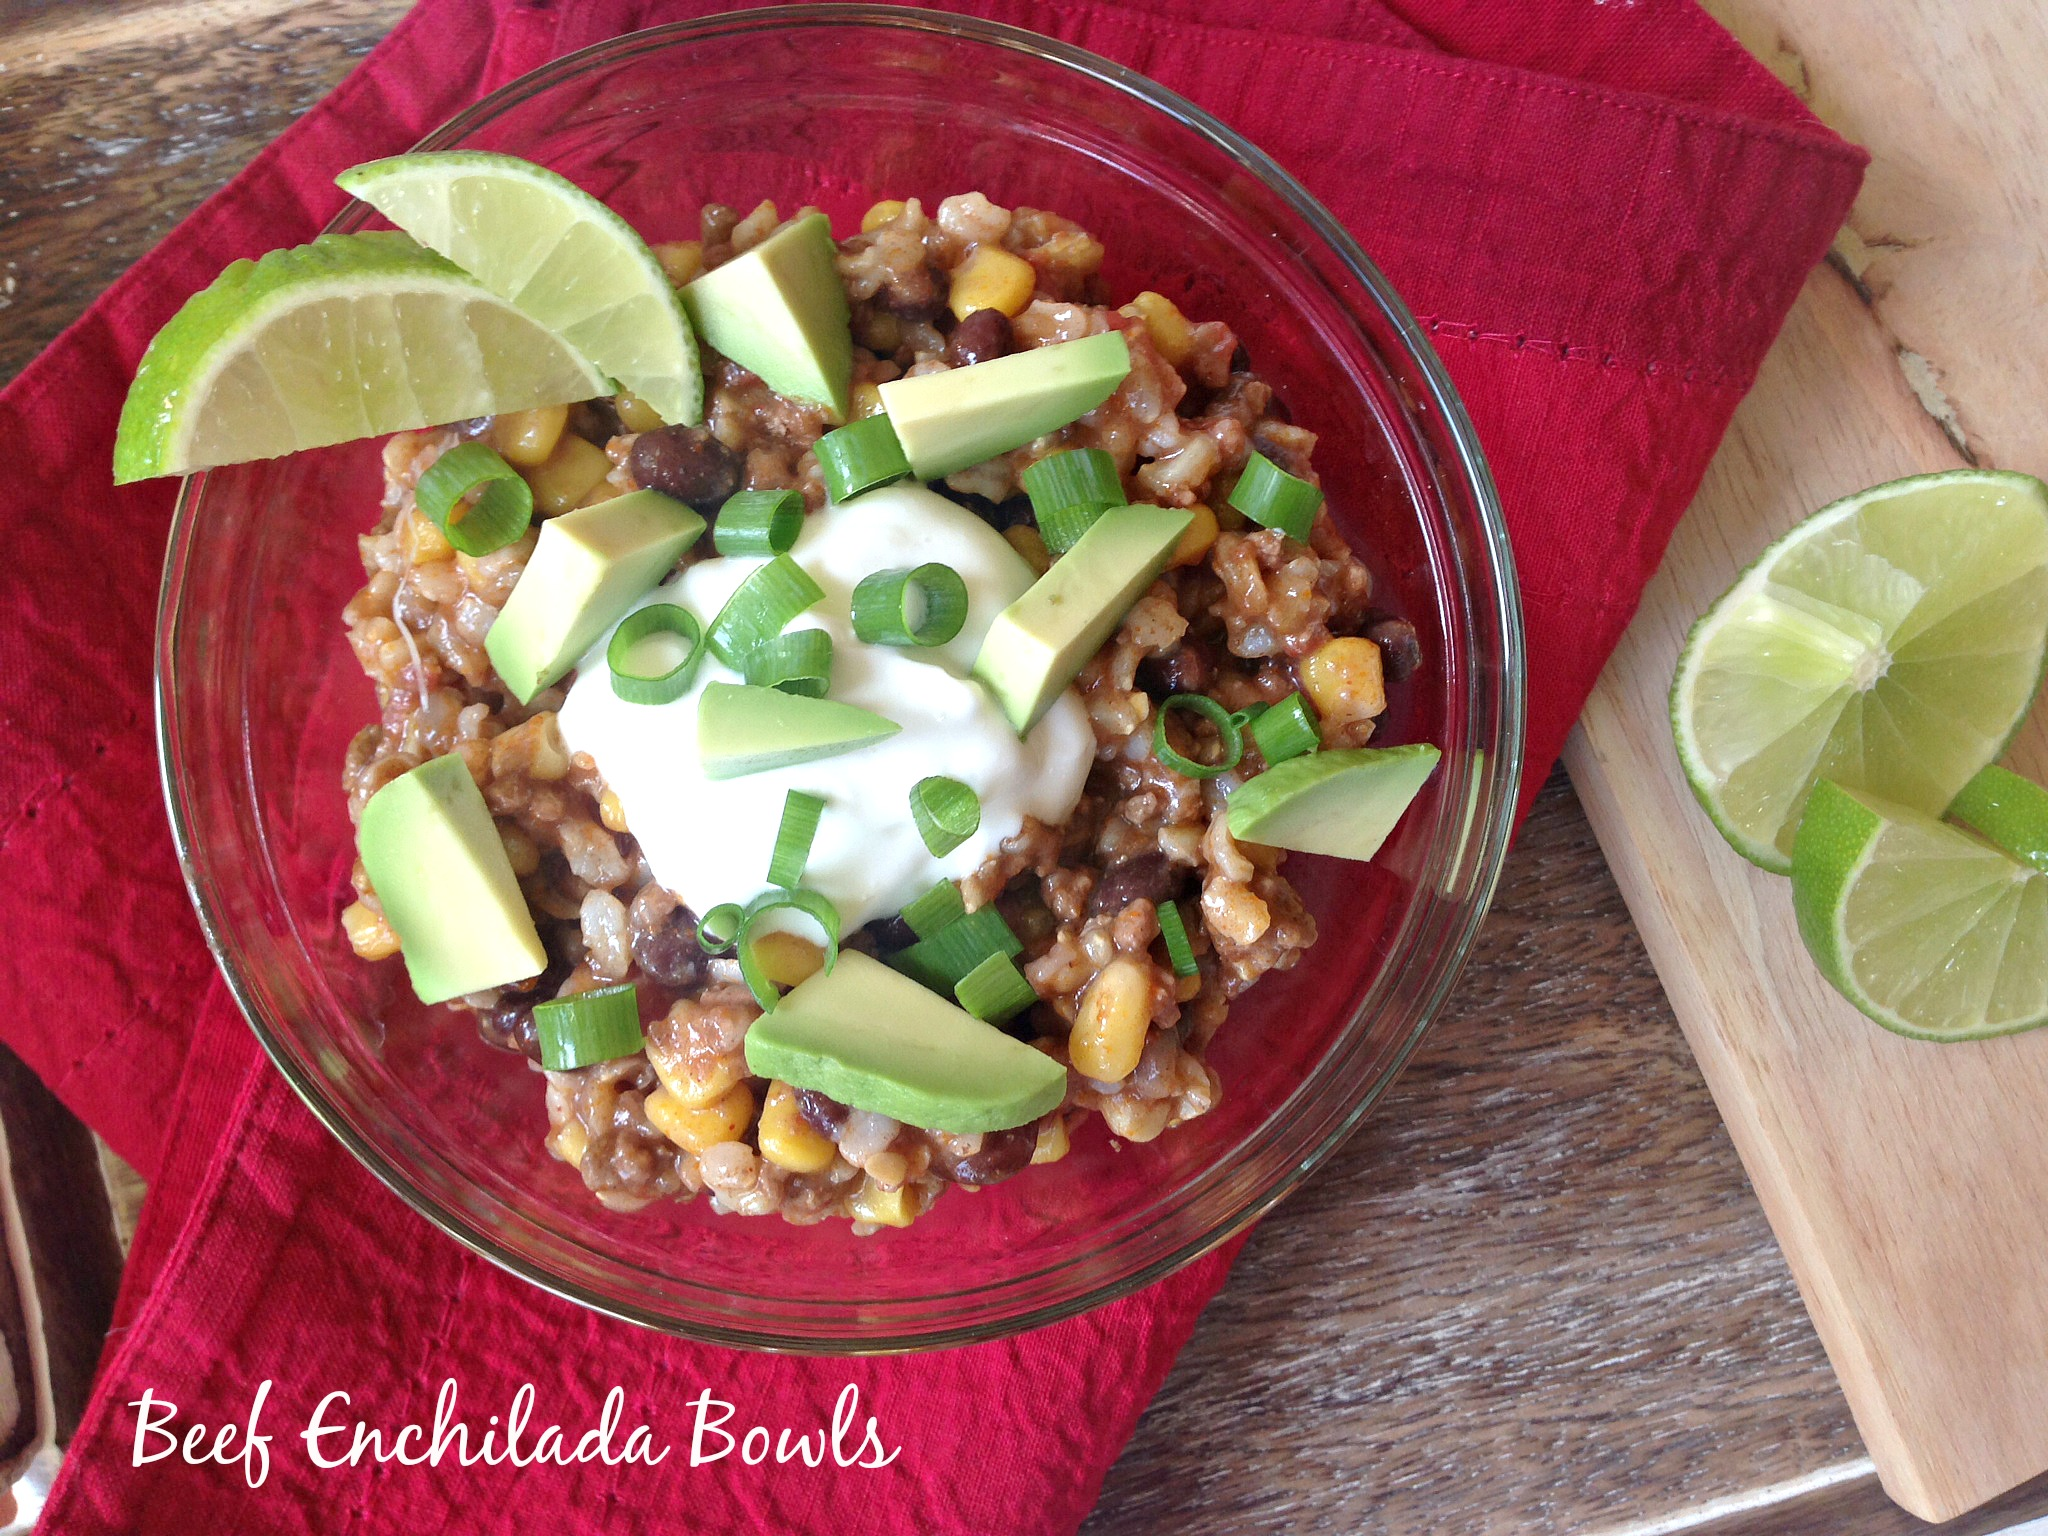 Low-Fat Beef Enchilada Bowls